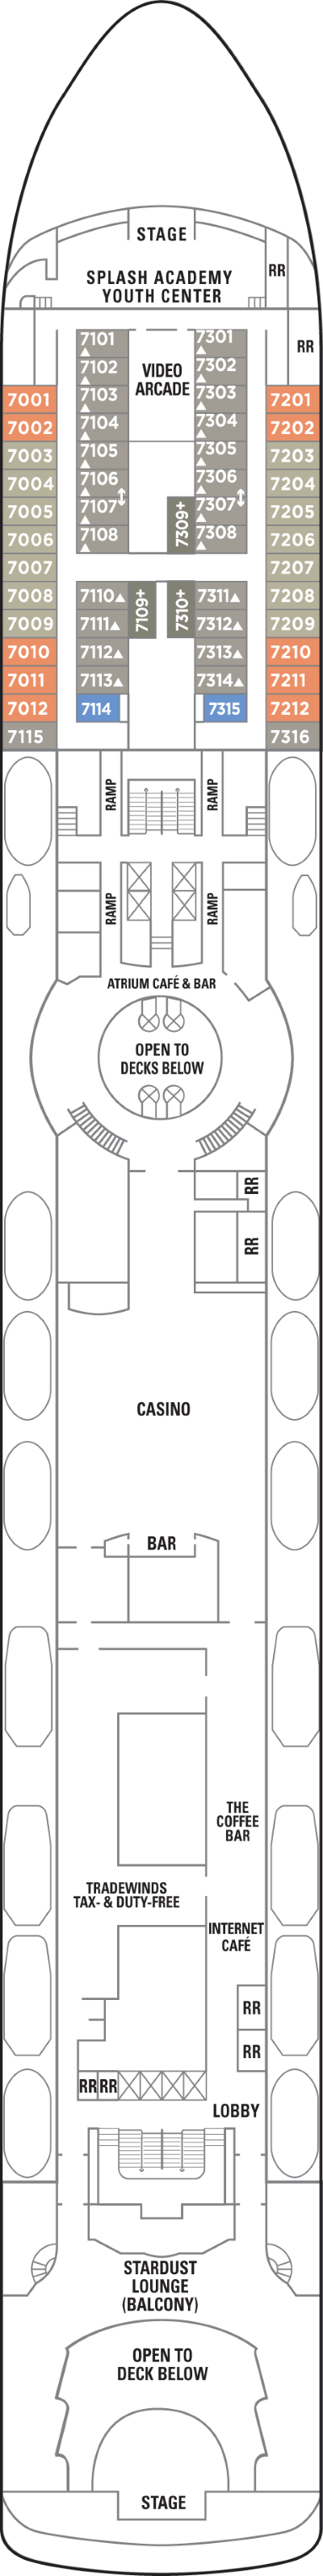 Norwegian Sky Deck 7 layout